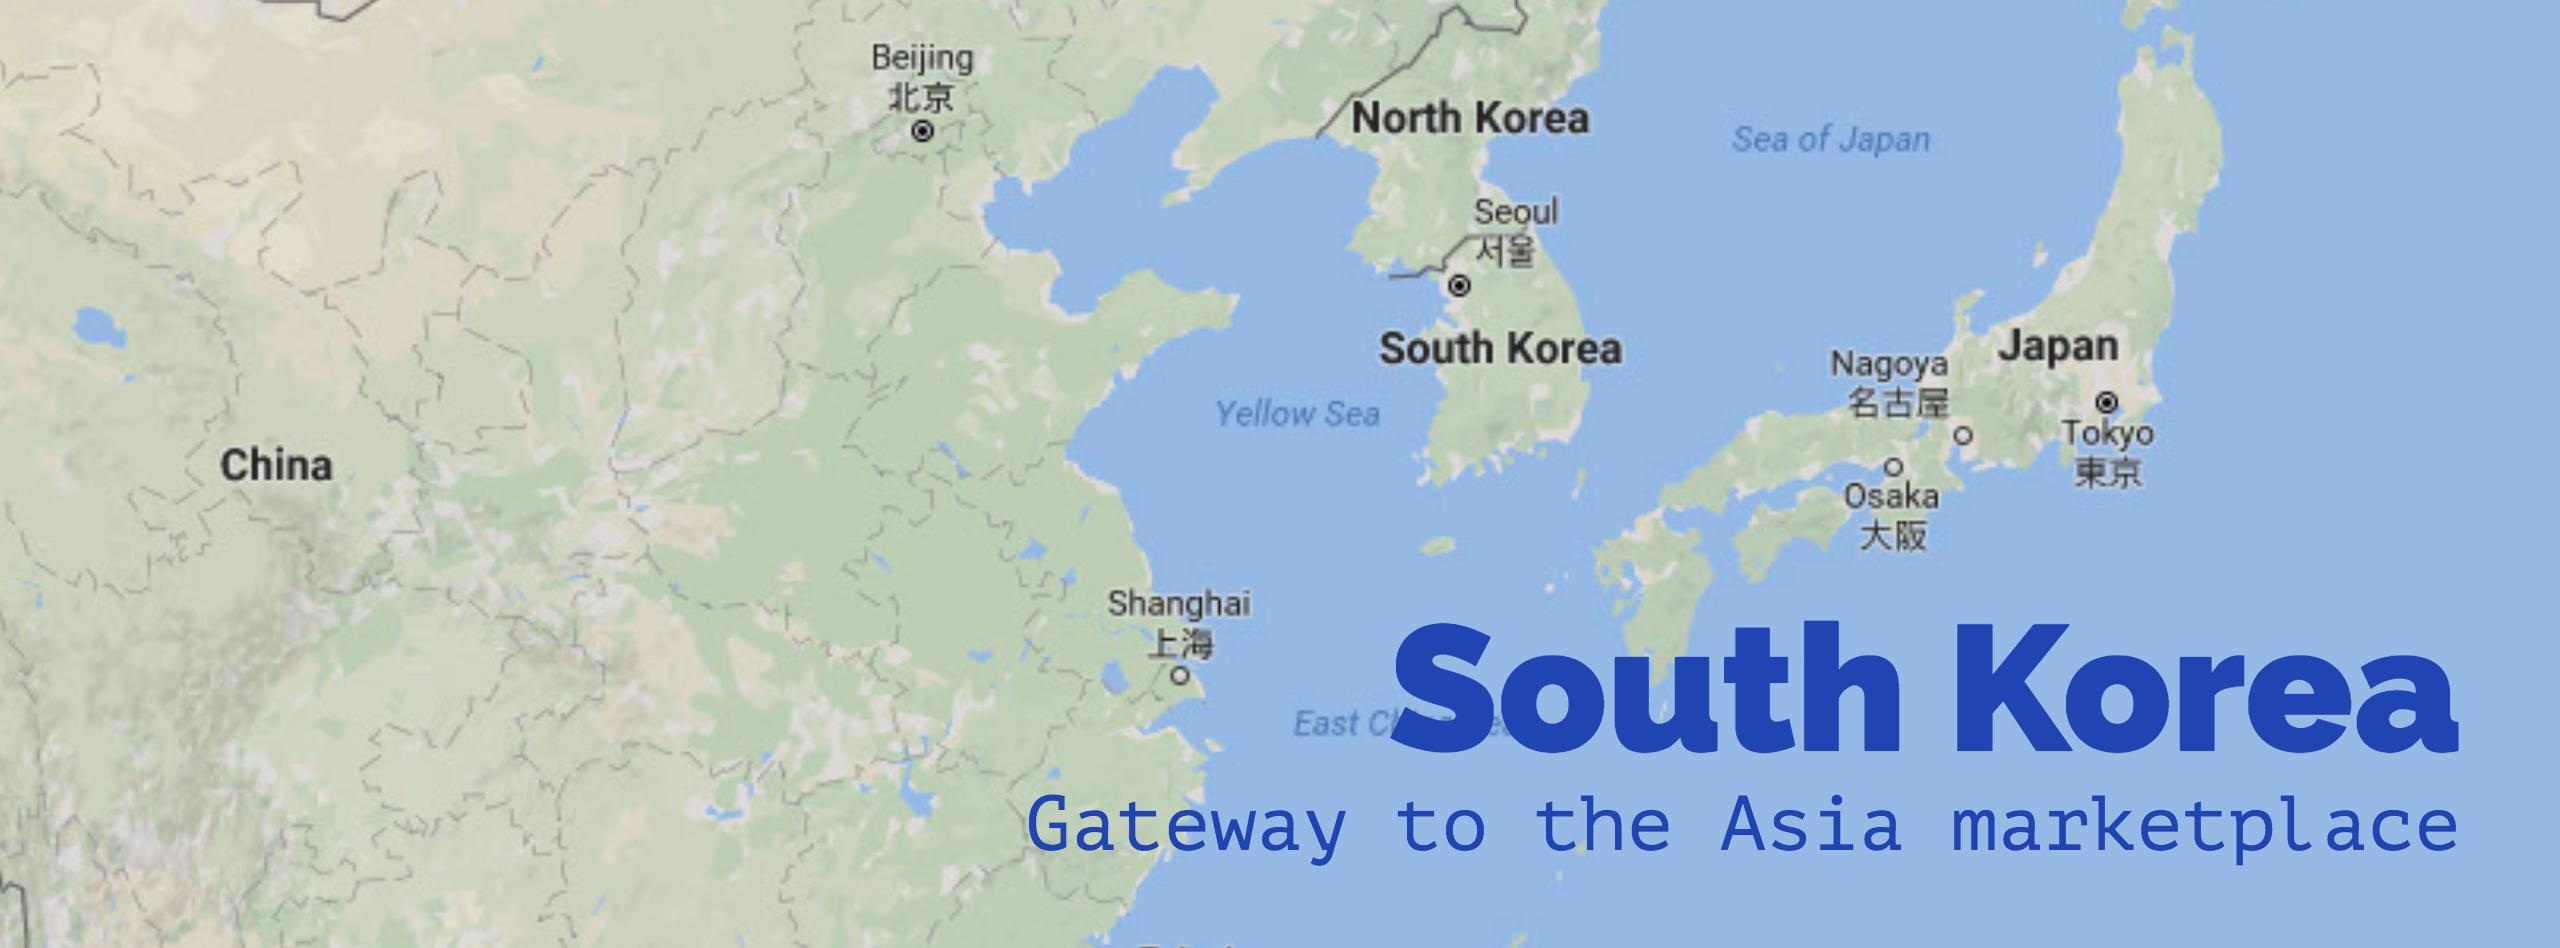 Go global south korea business trip scheduled for april 2017 go global business trip to south korea scheduled for april 2017 south korea gumiabroncs Choice Image